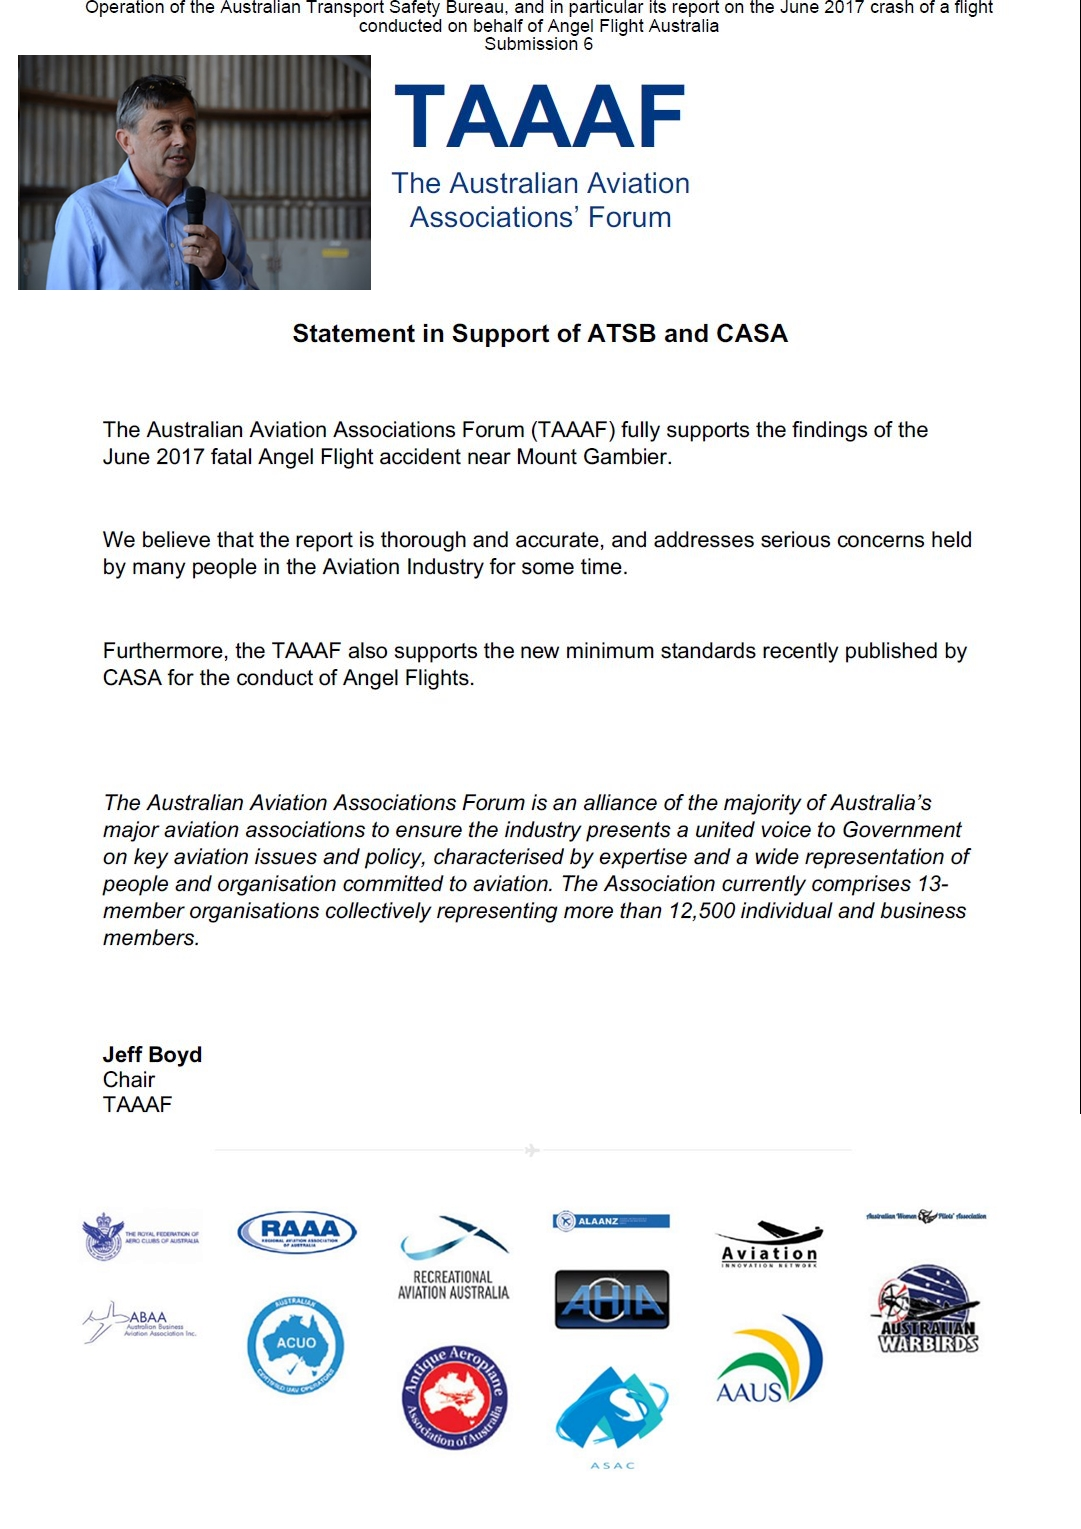 [Image: TAAAF-Statement-in-support-of-ATSB-and-CASA.jpg]